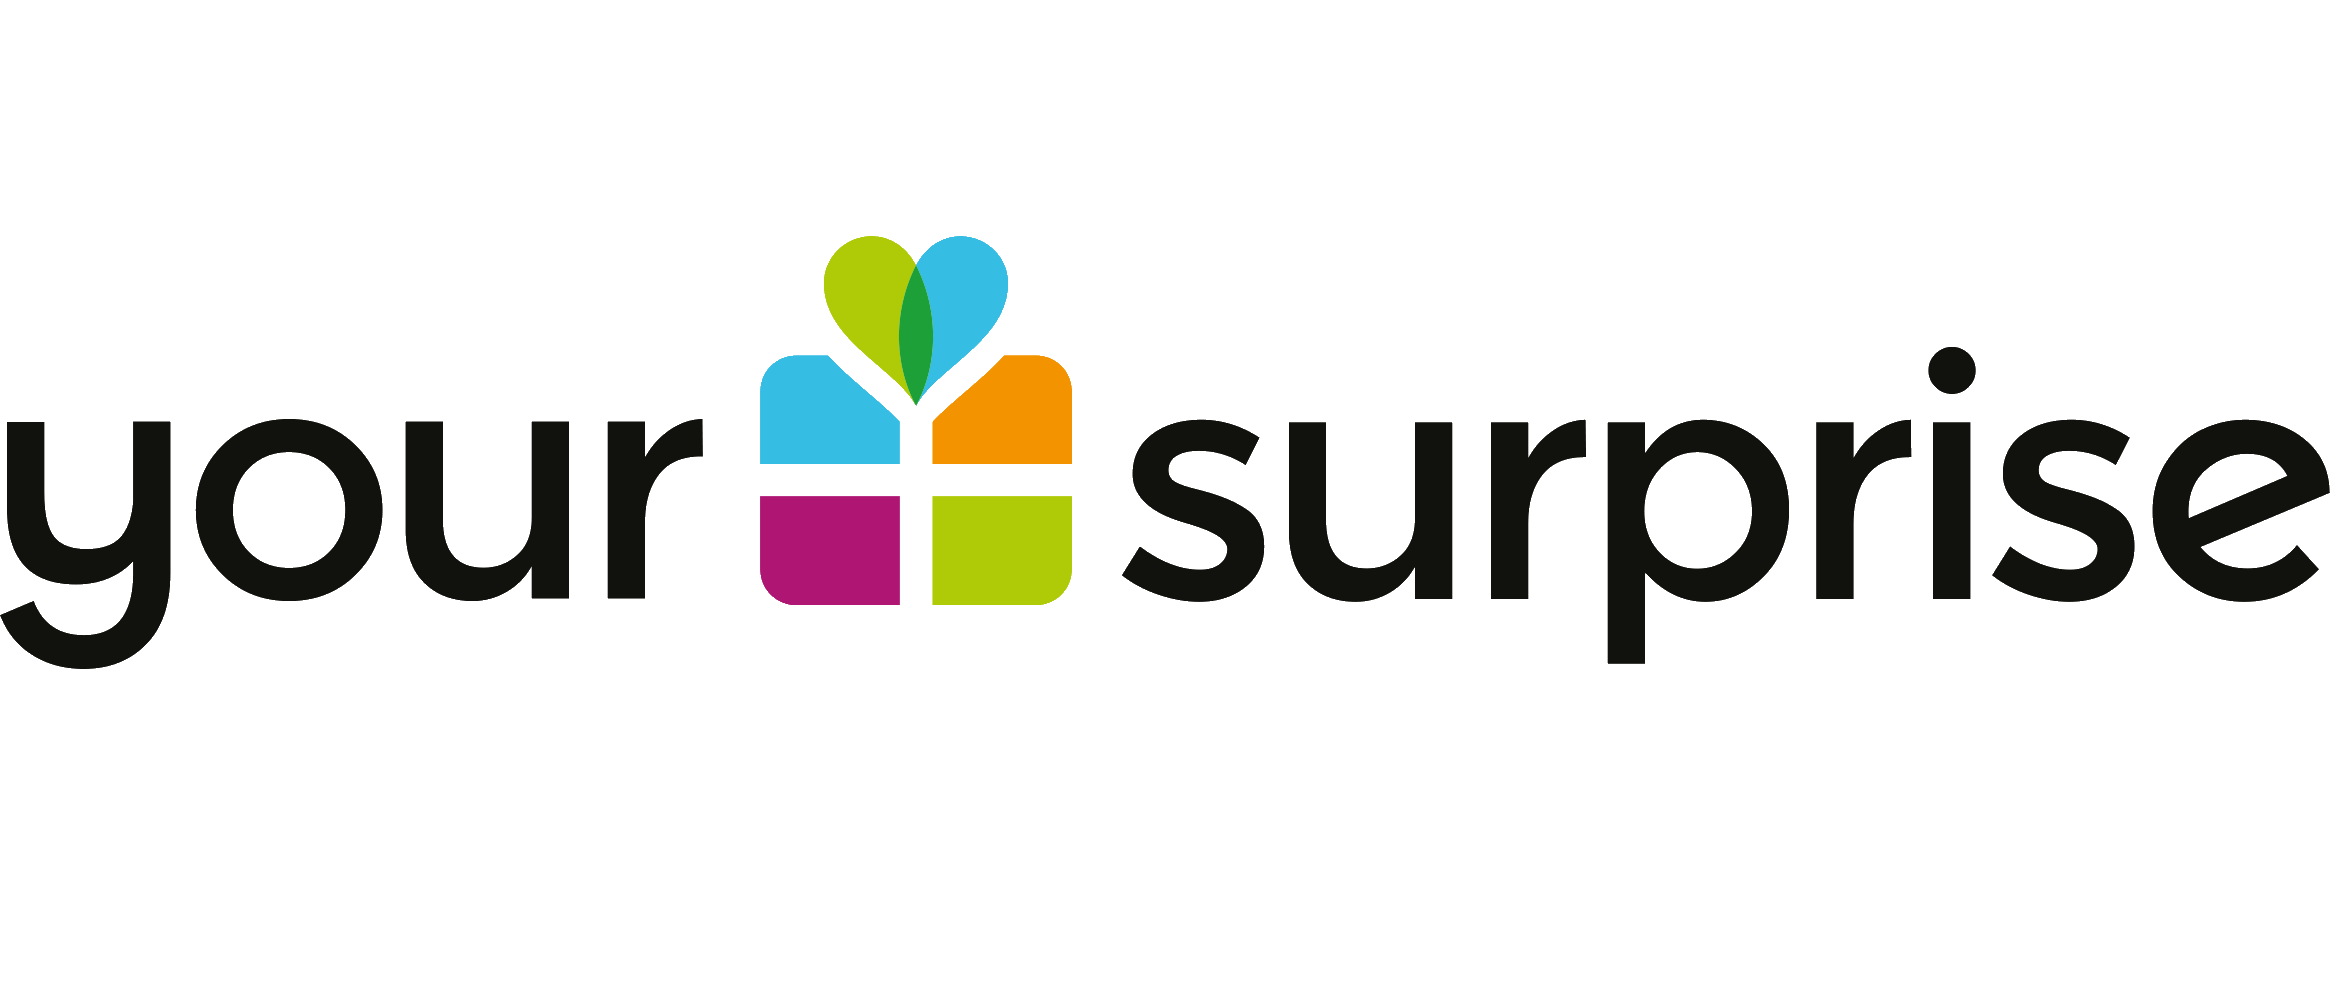 yoursurprise.it